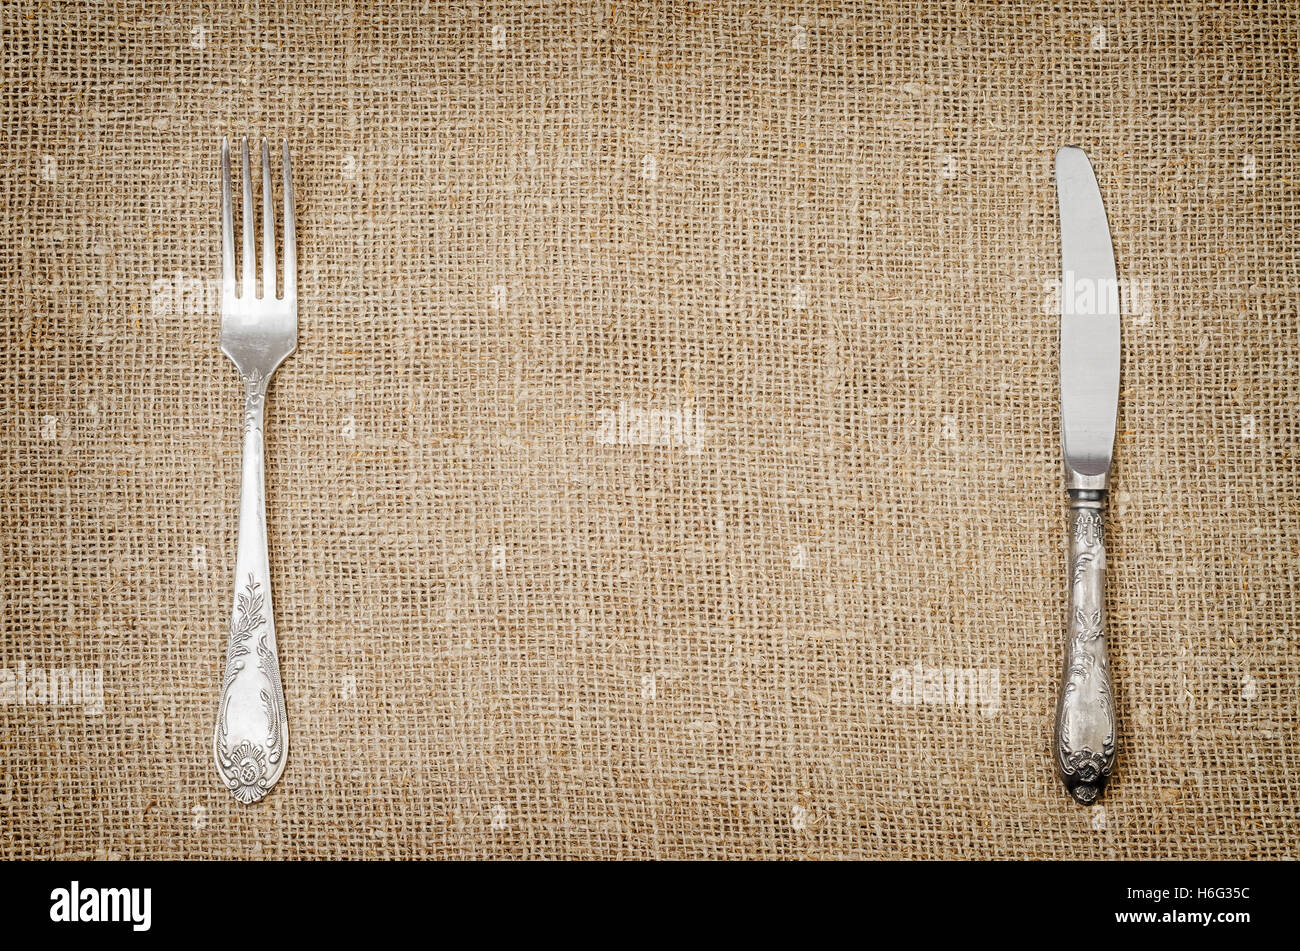 Rustic Flatware Patterns Linen Background Stock Photos And Linen Background Stock